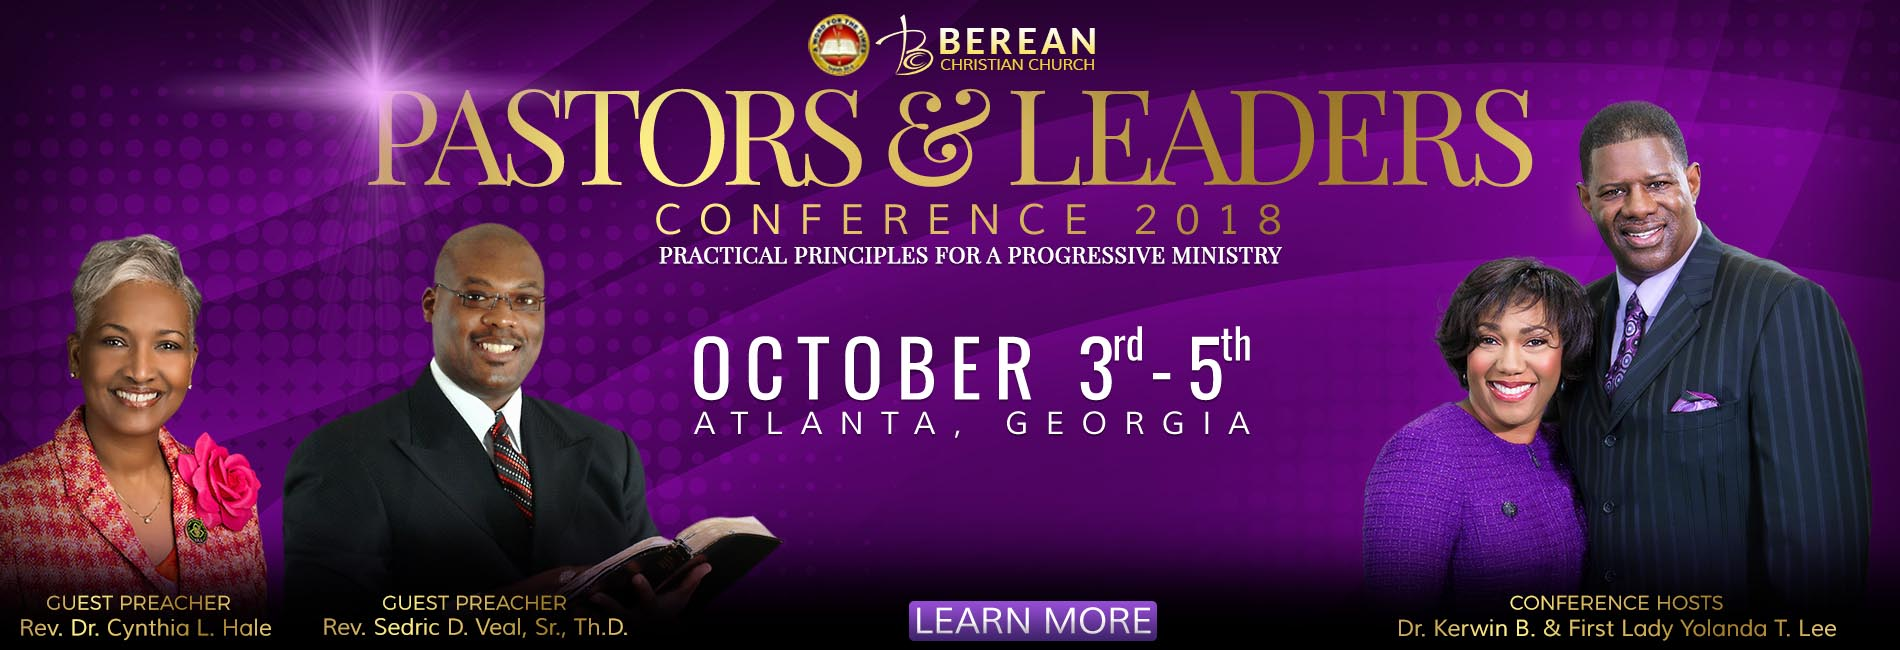 Pastors and Leaders Conference 2018